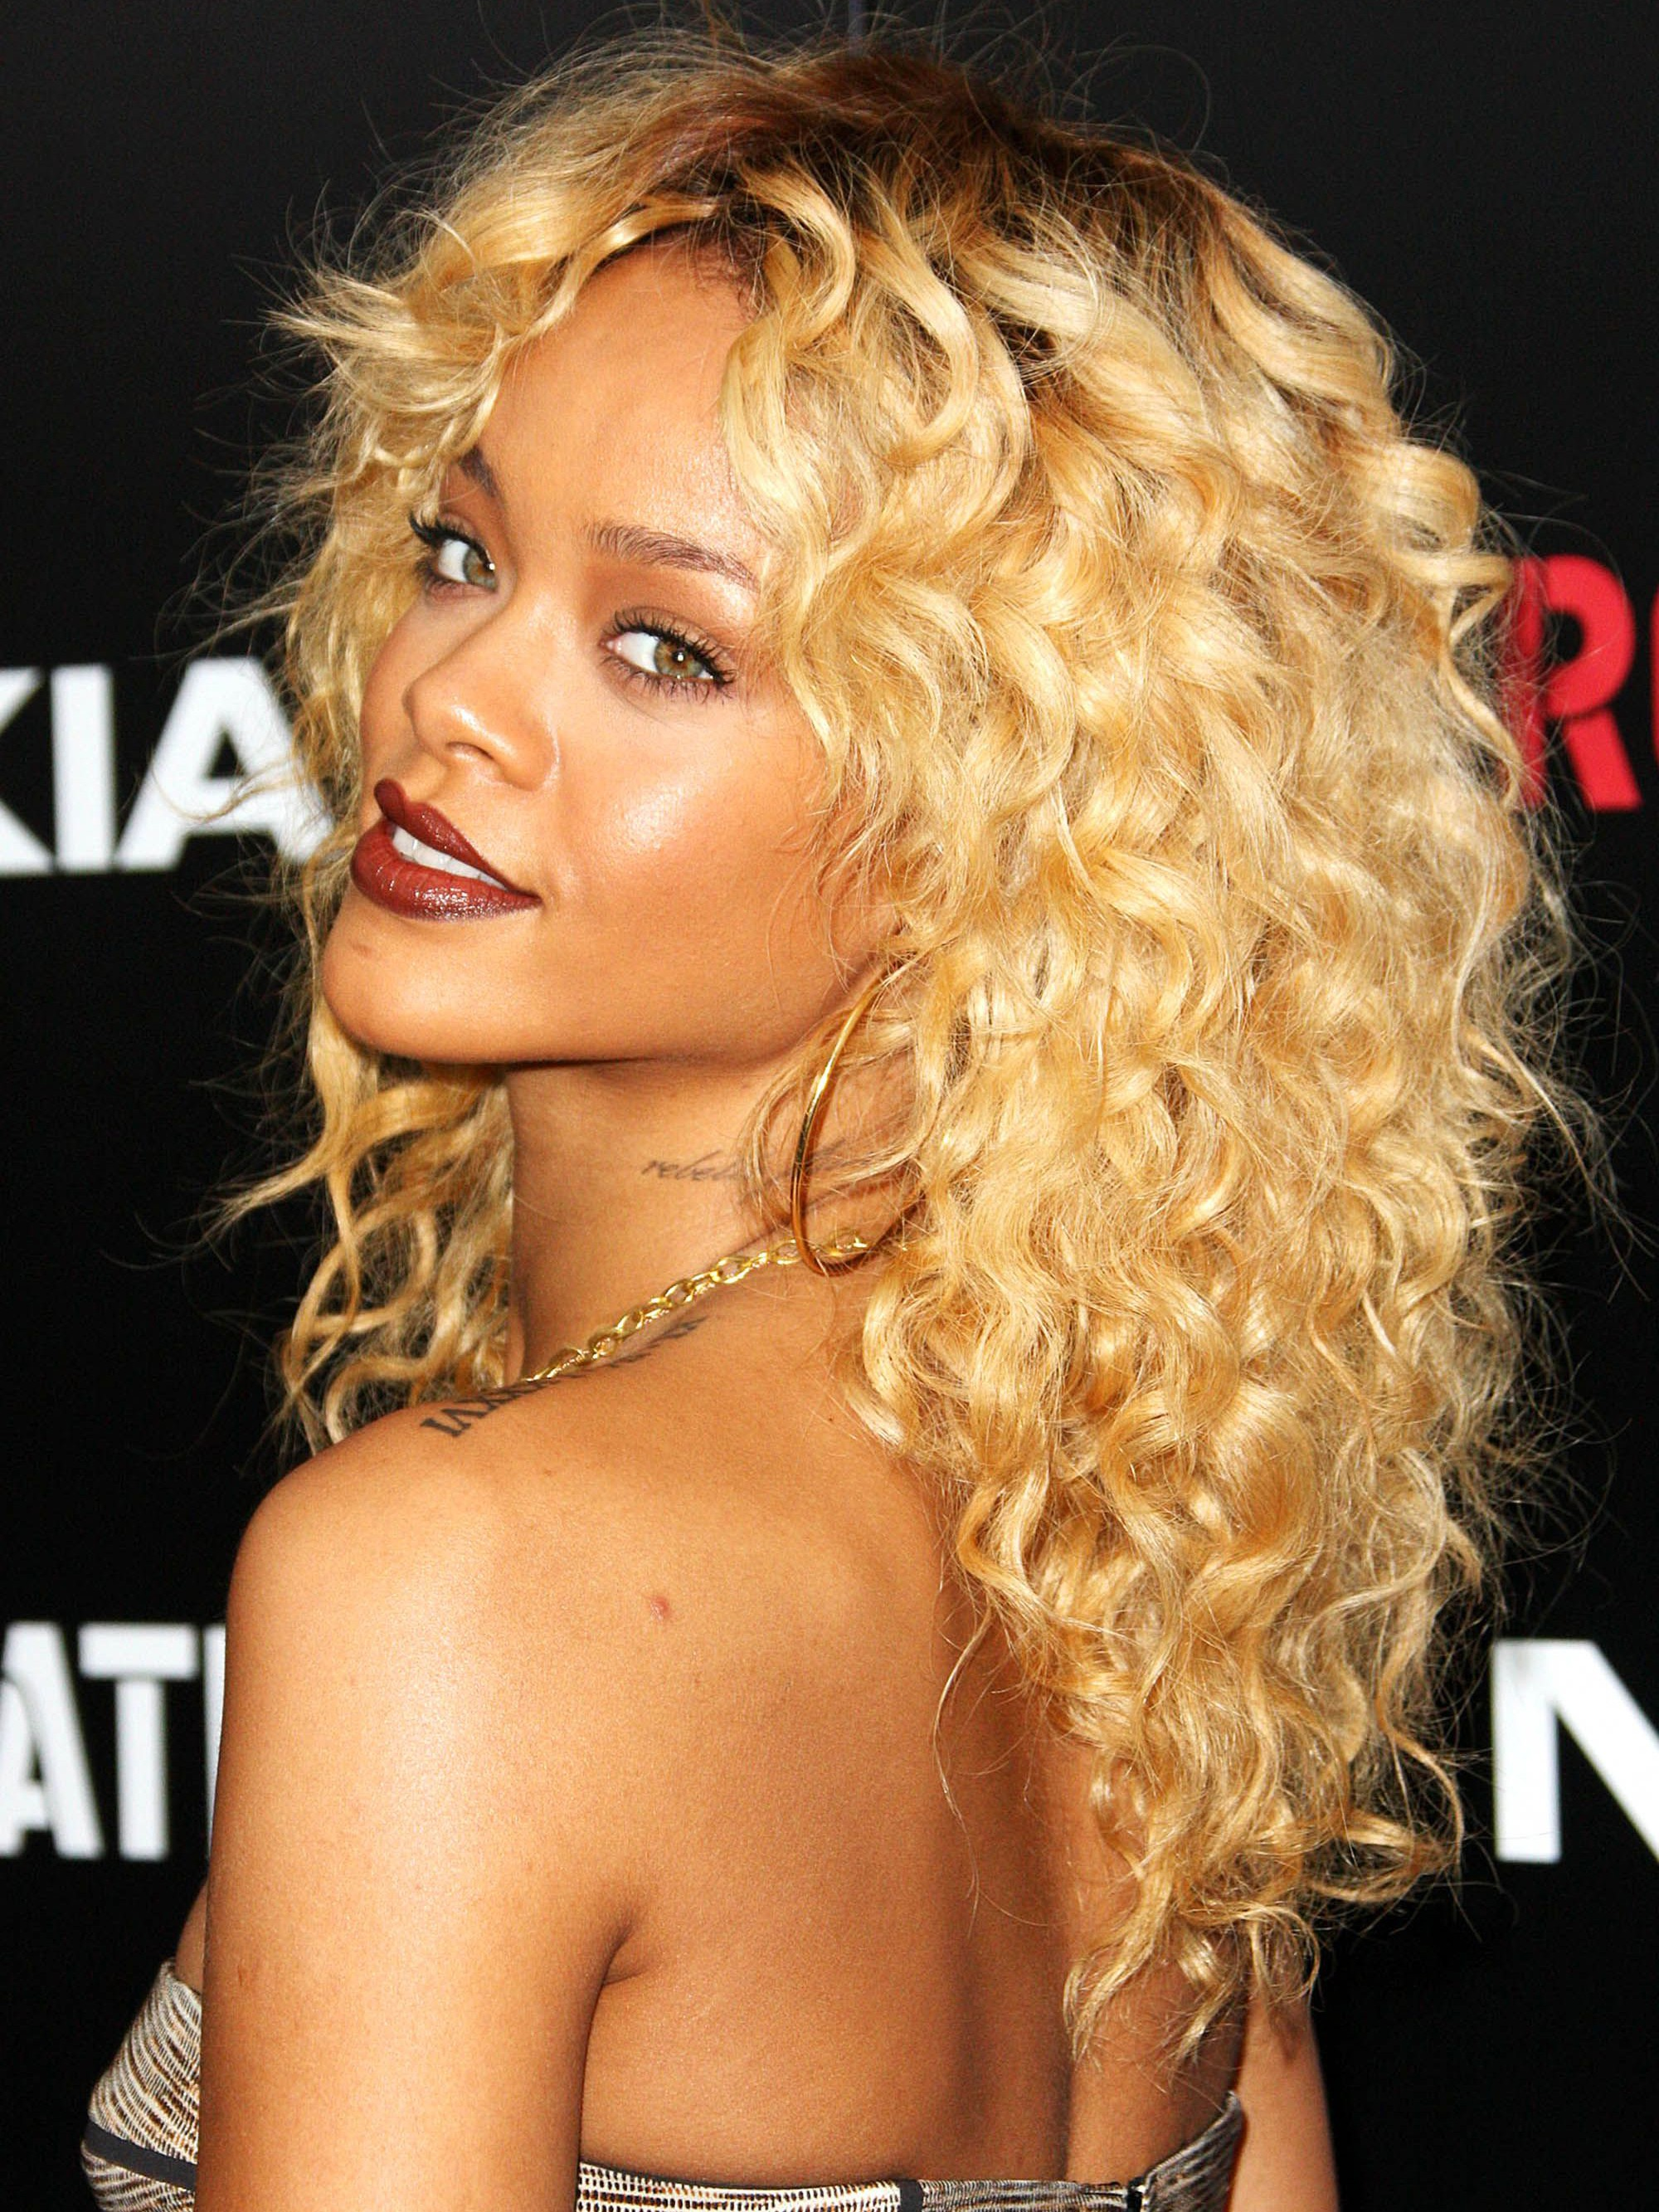 Rihanna S Most Iconic Blonde Curly Hair Wig For Black